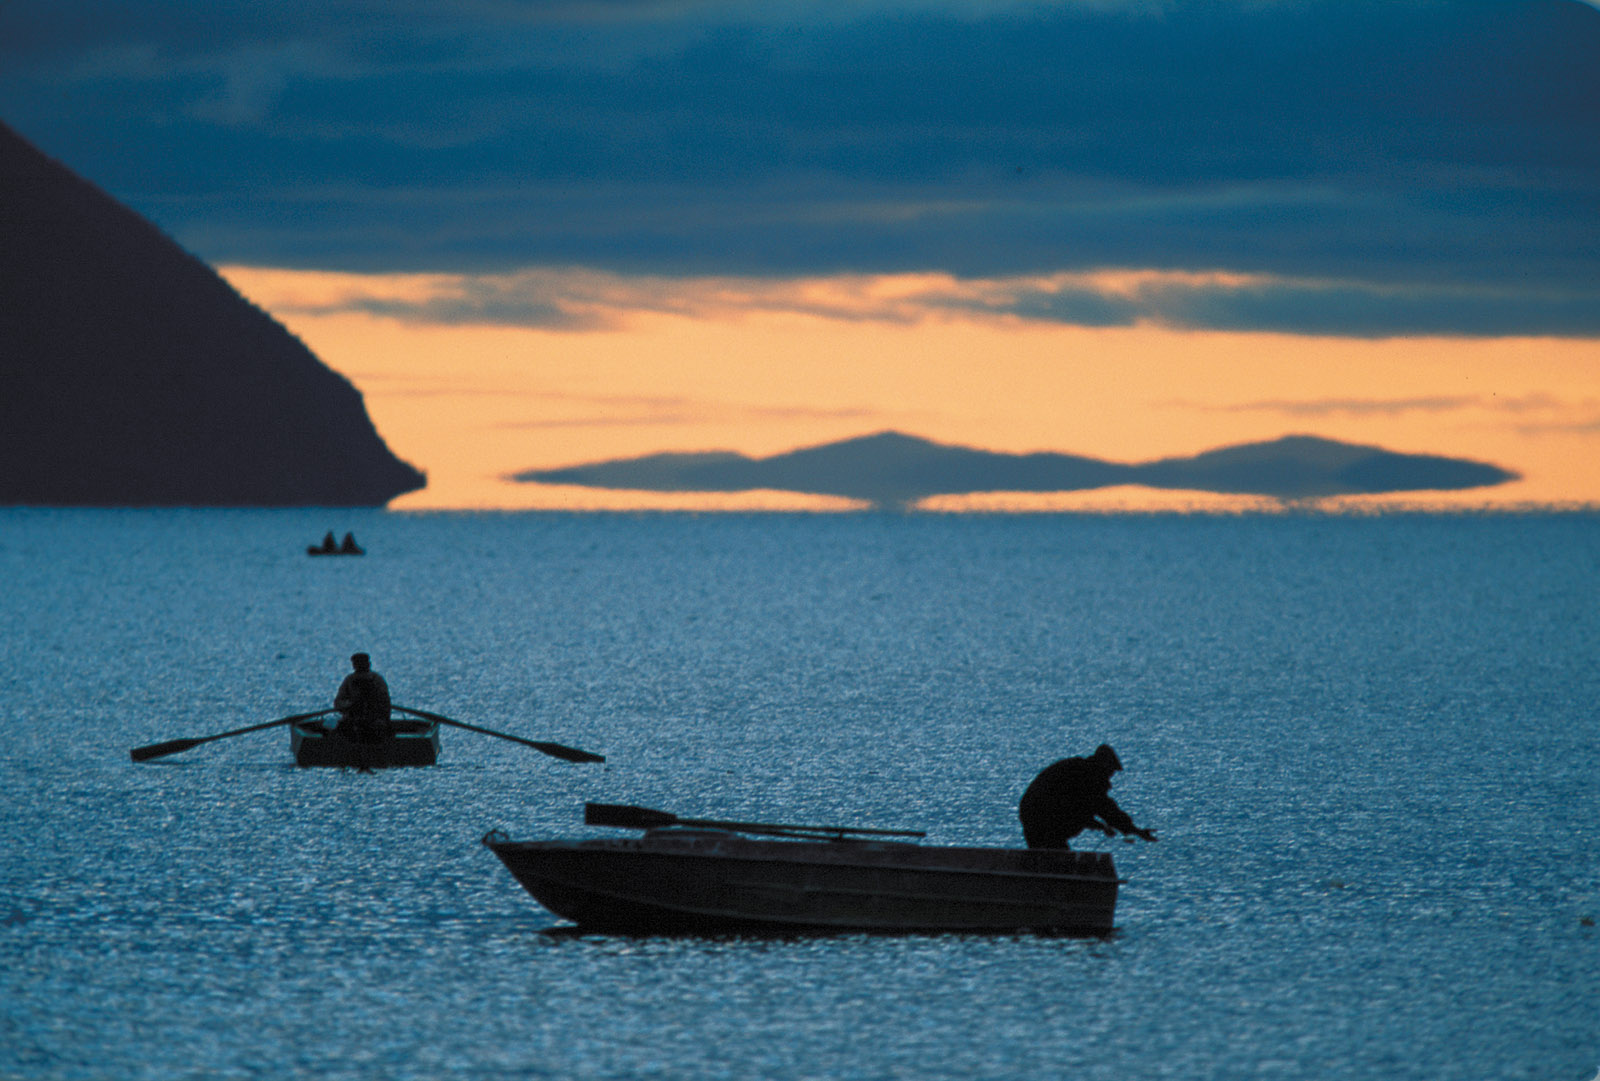 Fishermen on the Okhotsk Sea, at the mouth of the Amur River, which separates Russia and China